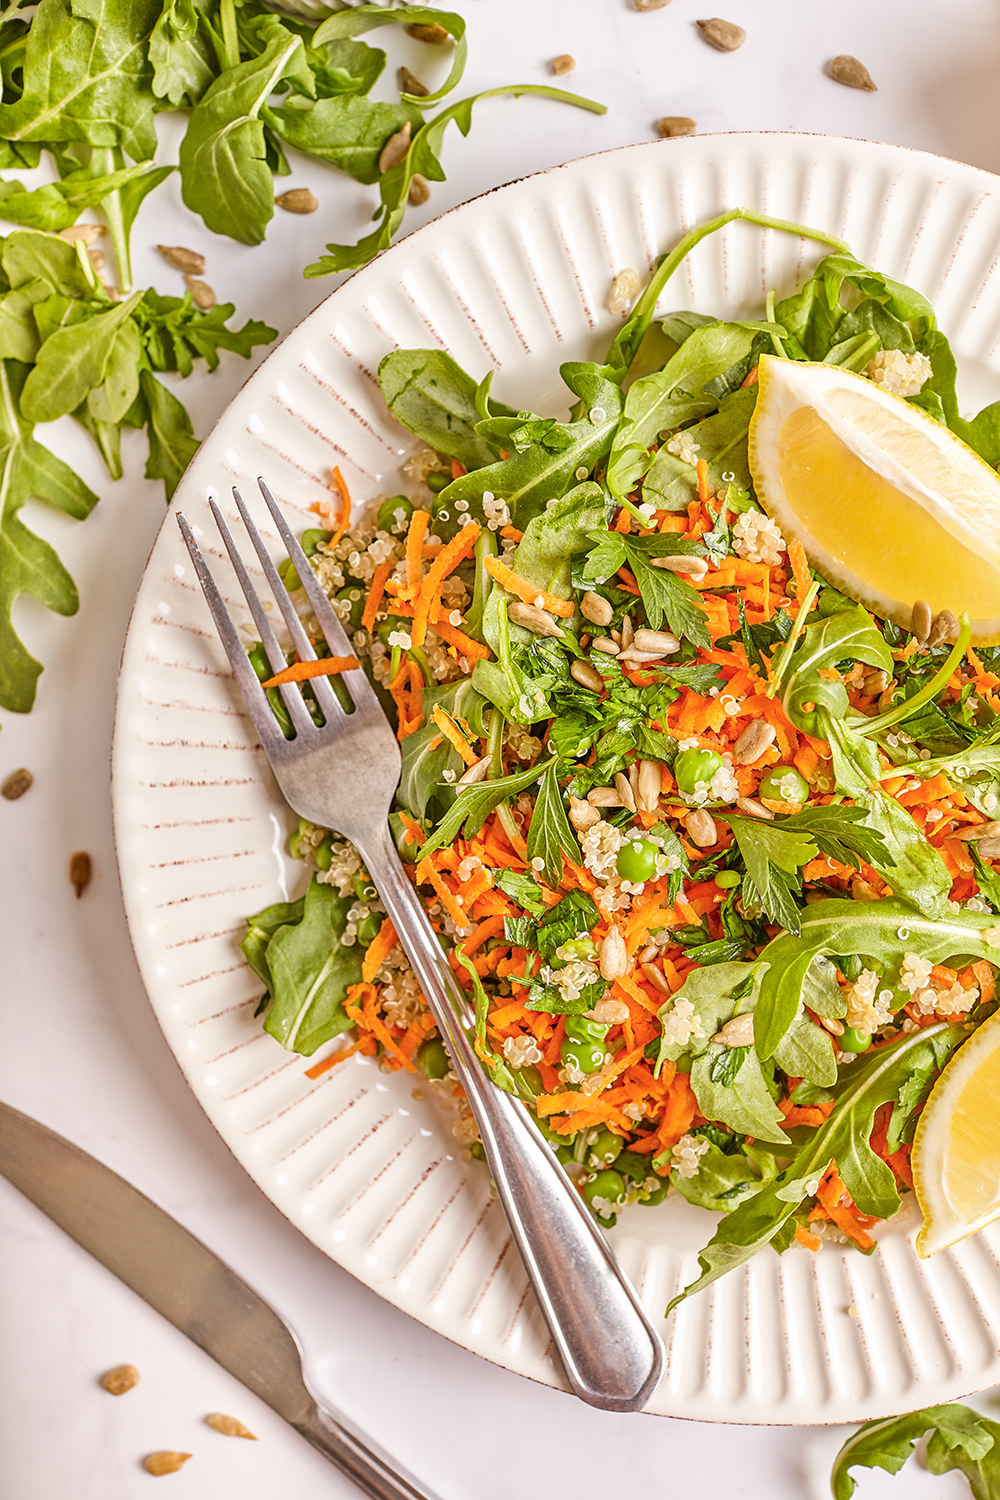 Arugula and carrot salad with quinoa